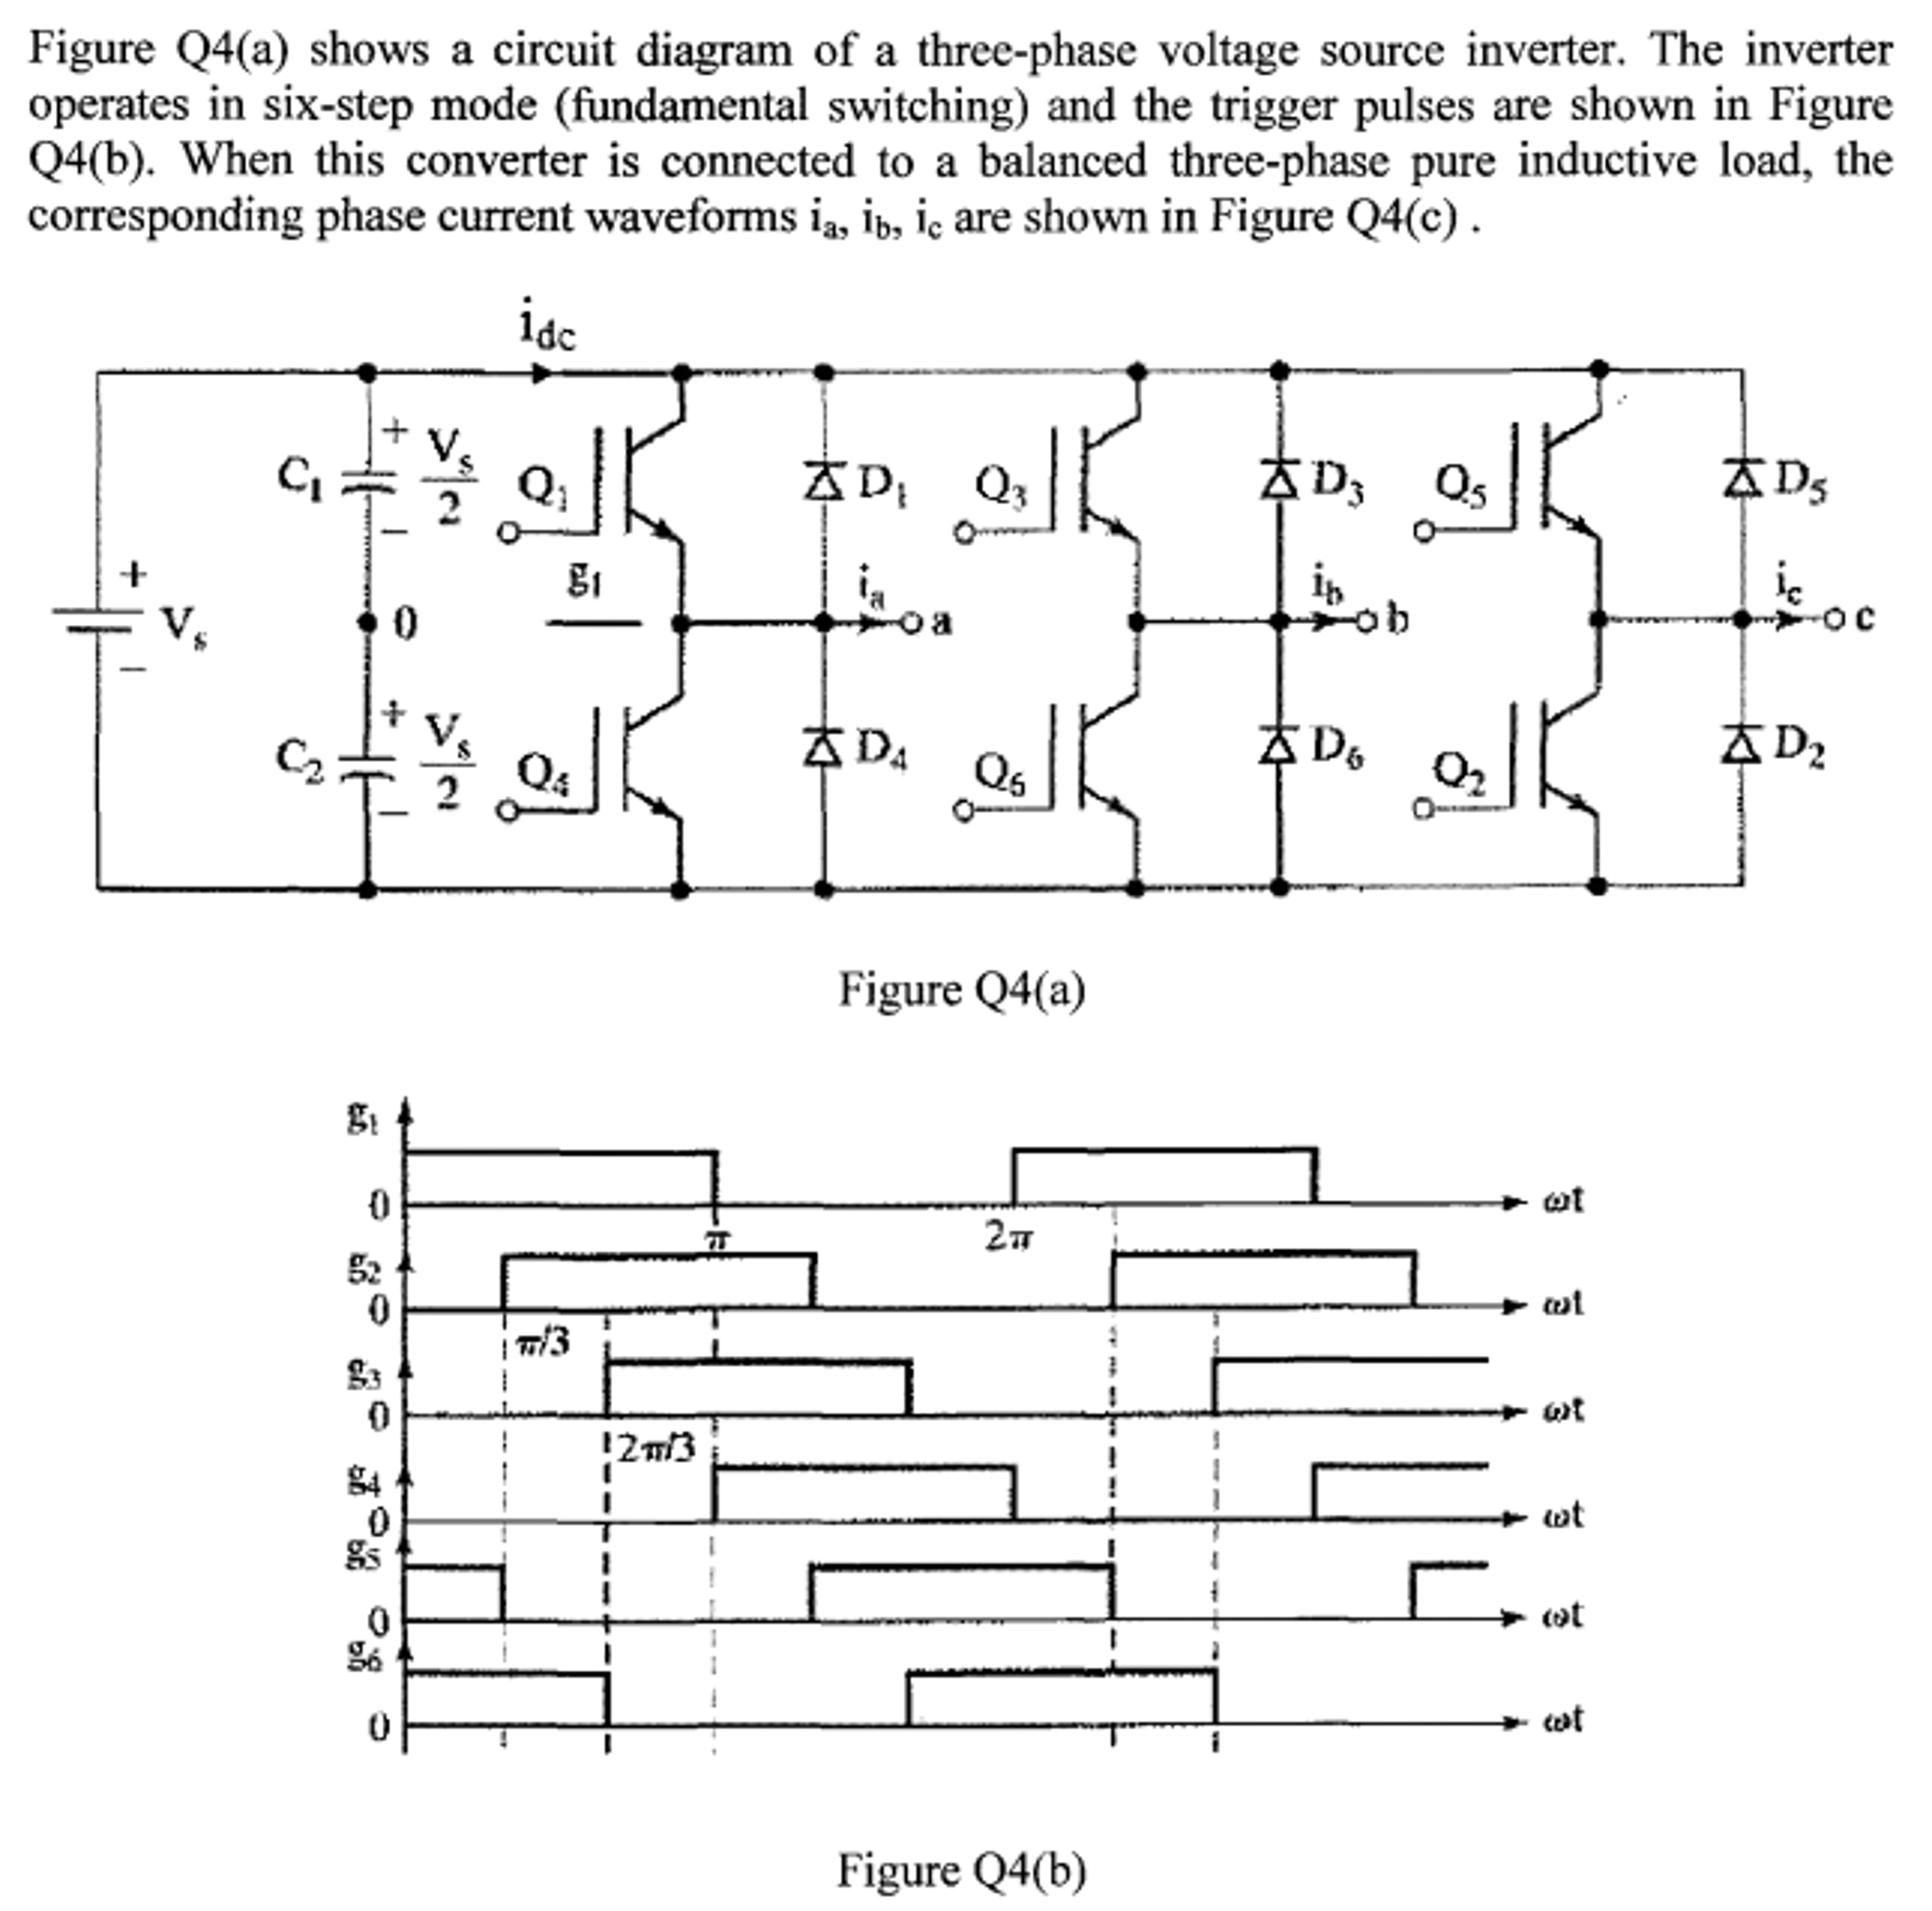 a circuit diagram of a three